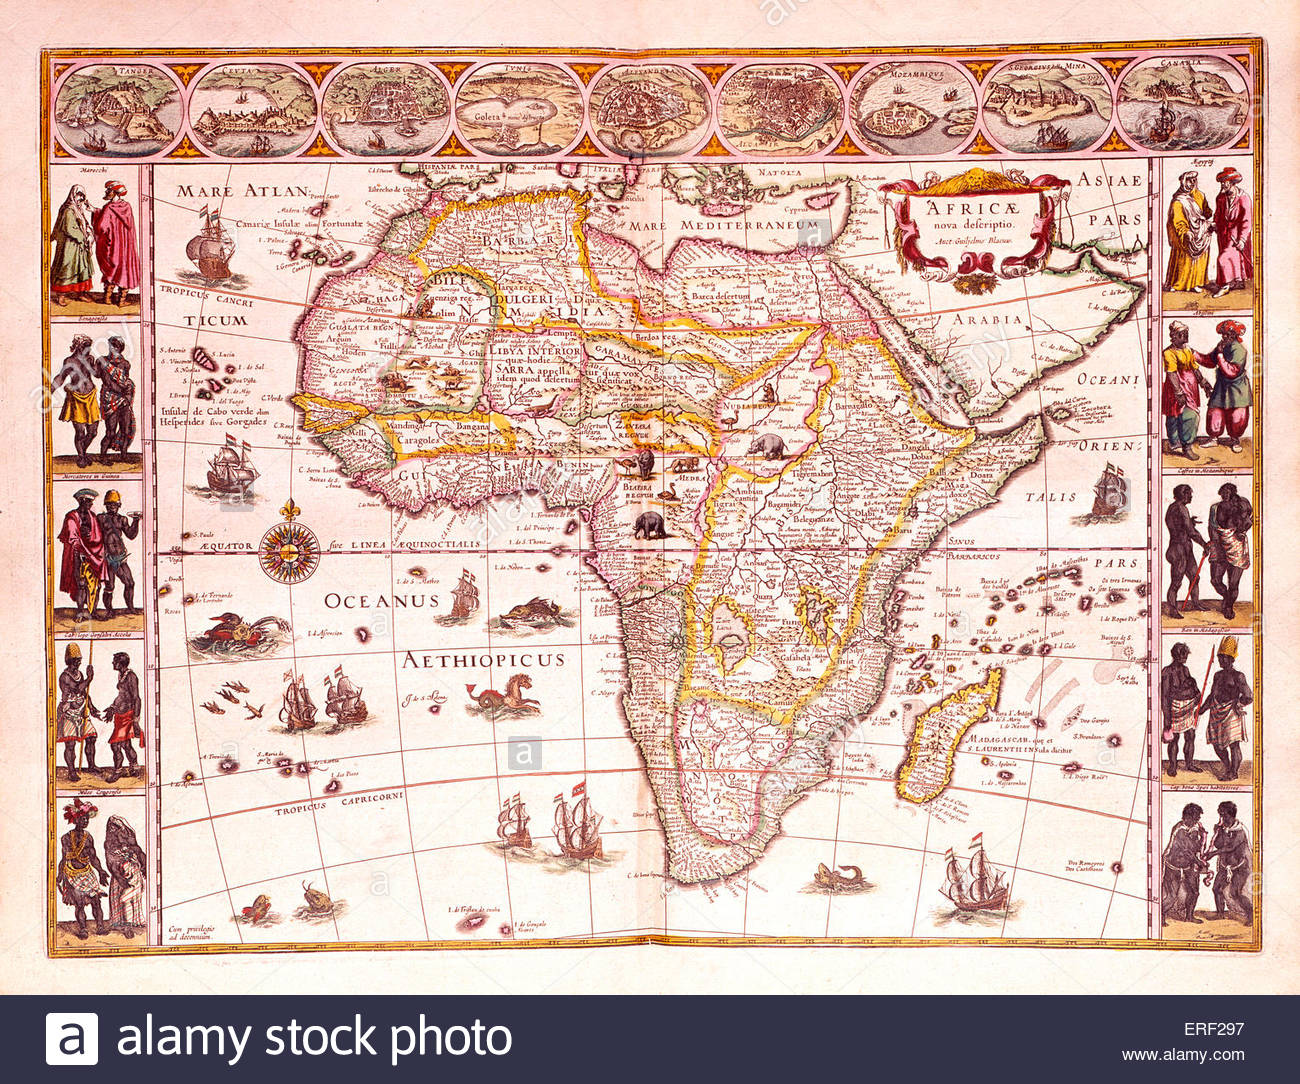 'Map of Africae' - from Joan Blaeu 's 'Grooten Atlas, Oft Werelt-Beschryving'.  Map dated 1665. - Stock Image